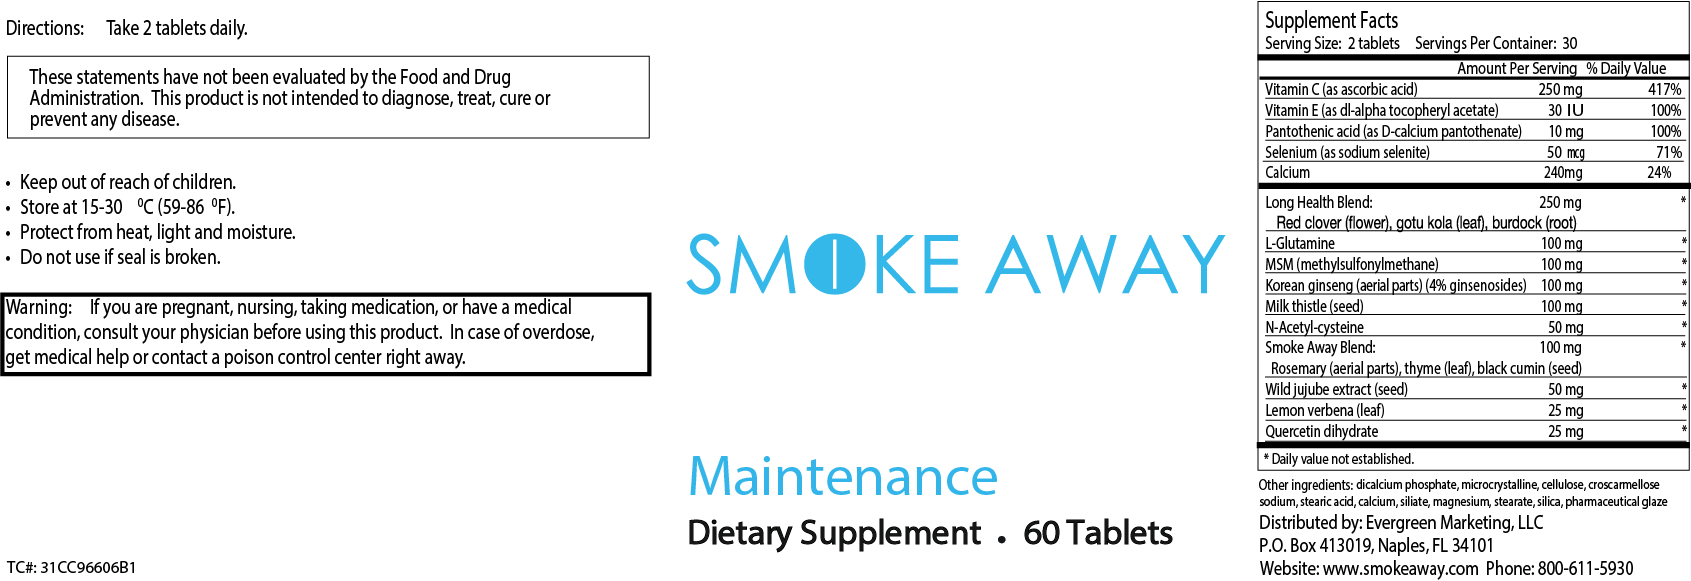 Smoke Away Maintenance Label